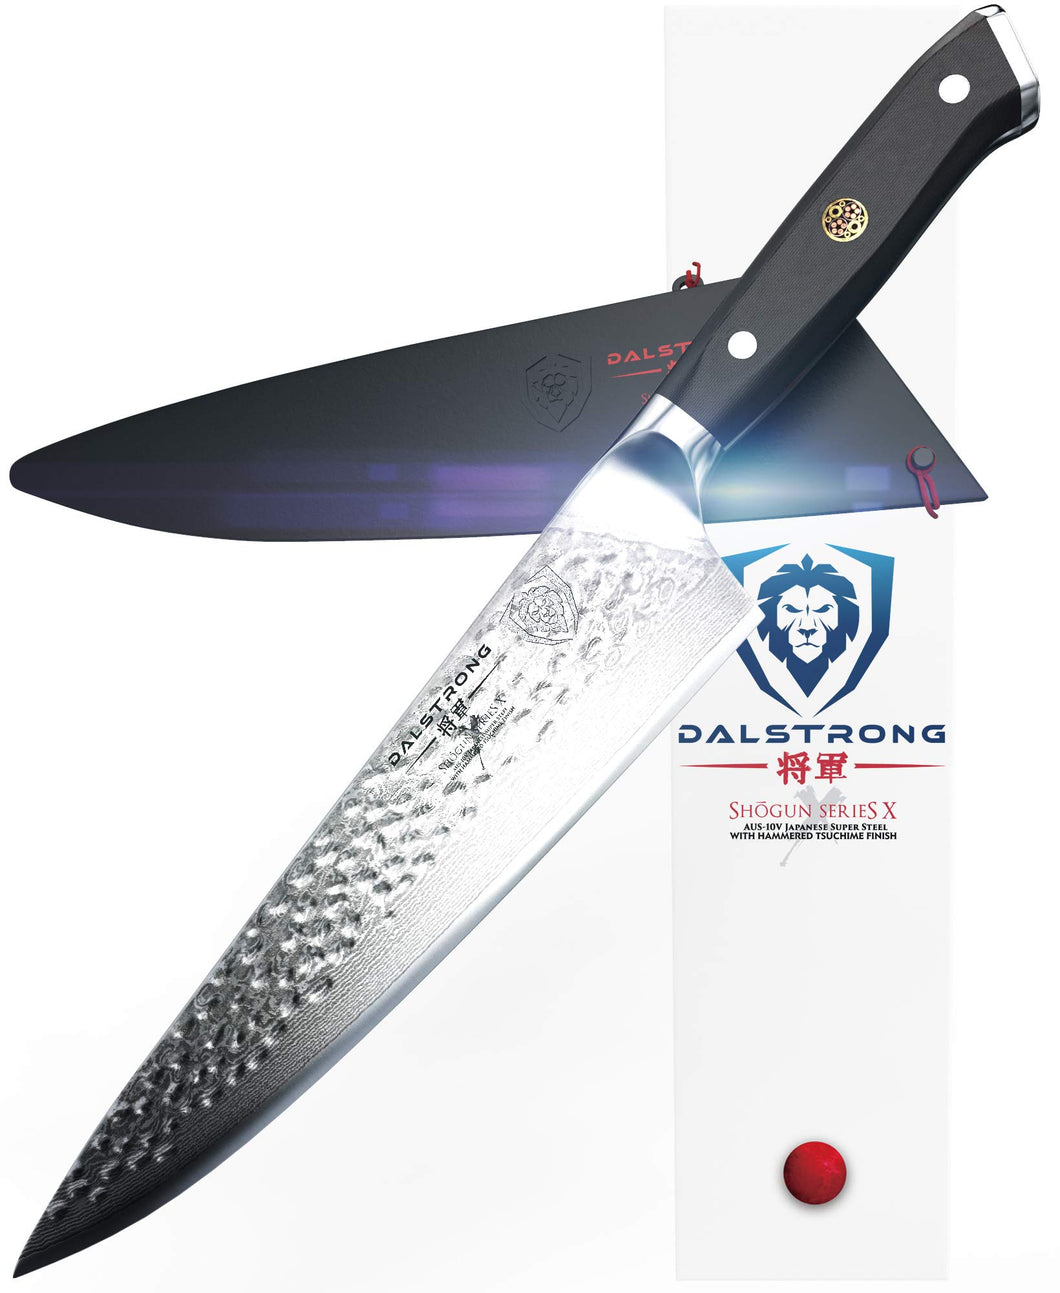 DALSTRONG Chef's Knife - 10.25